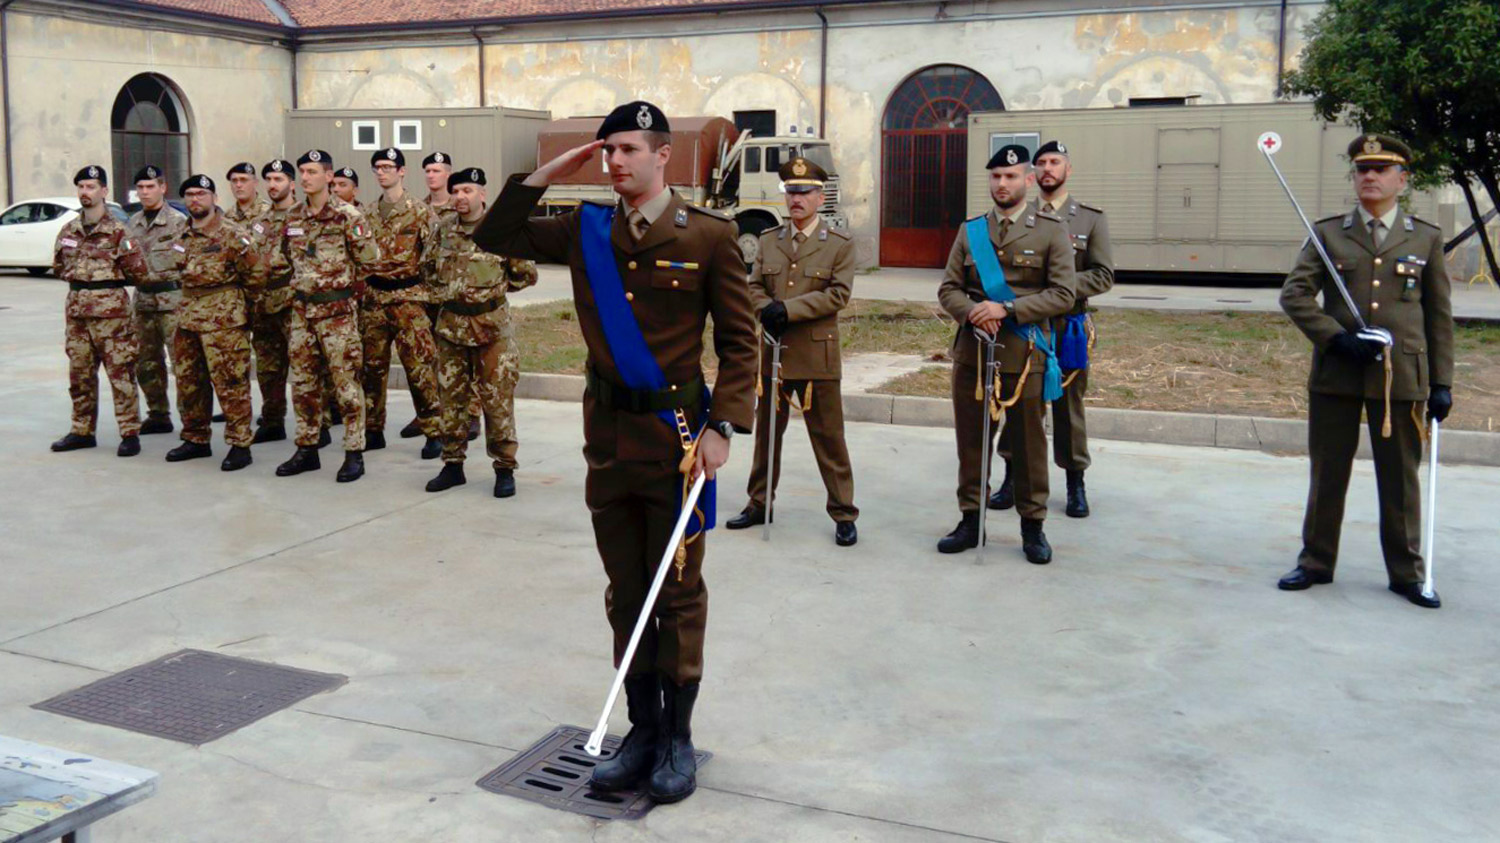 Italian Red Cross army officer with saber during a formal training